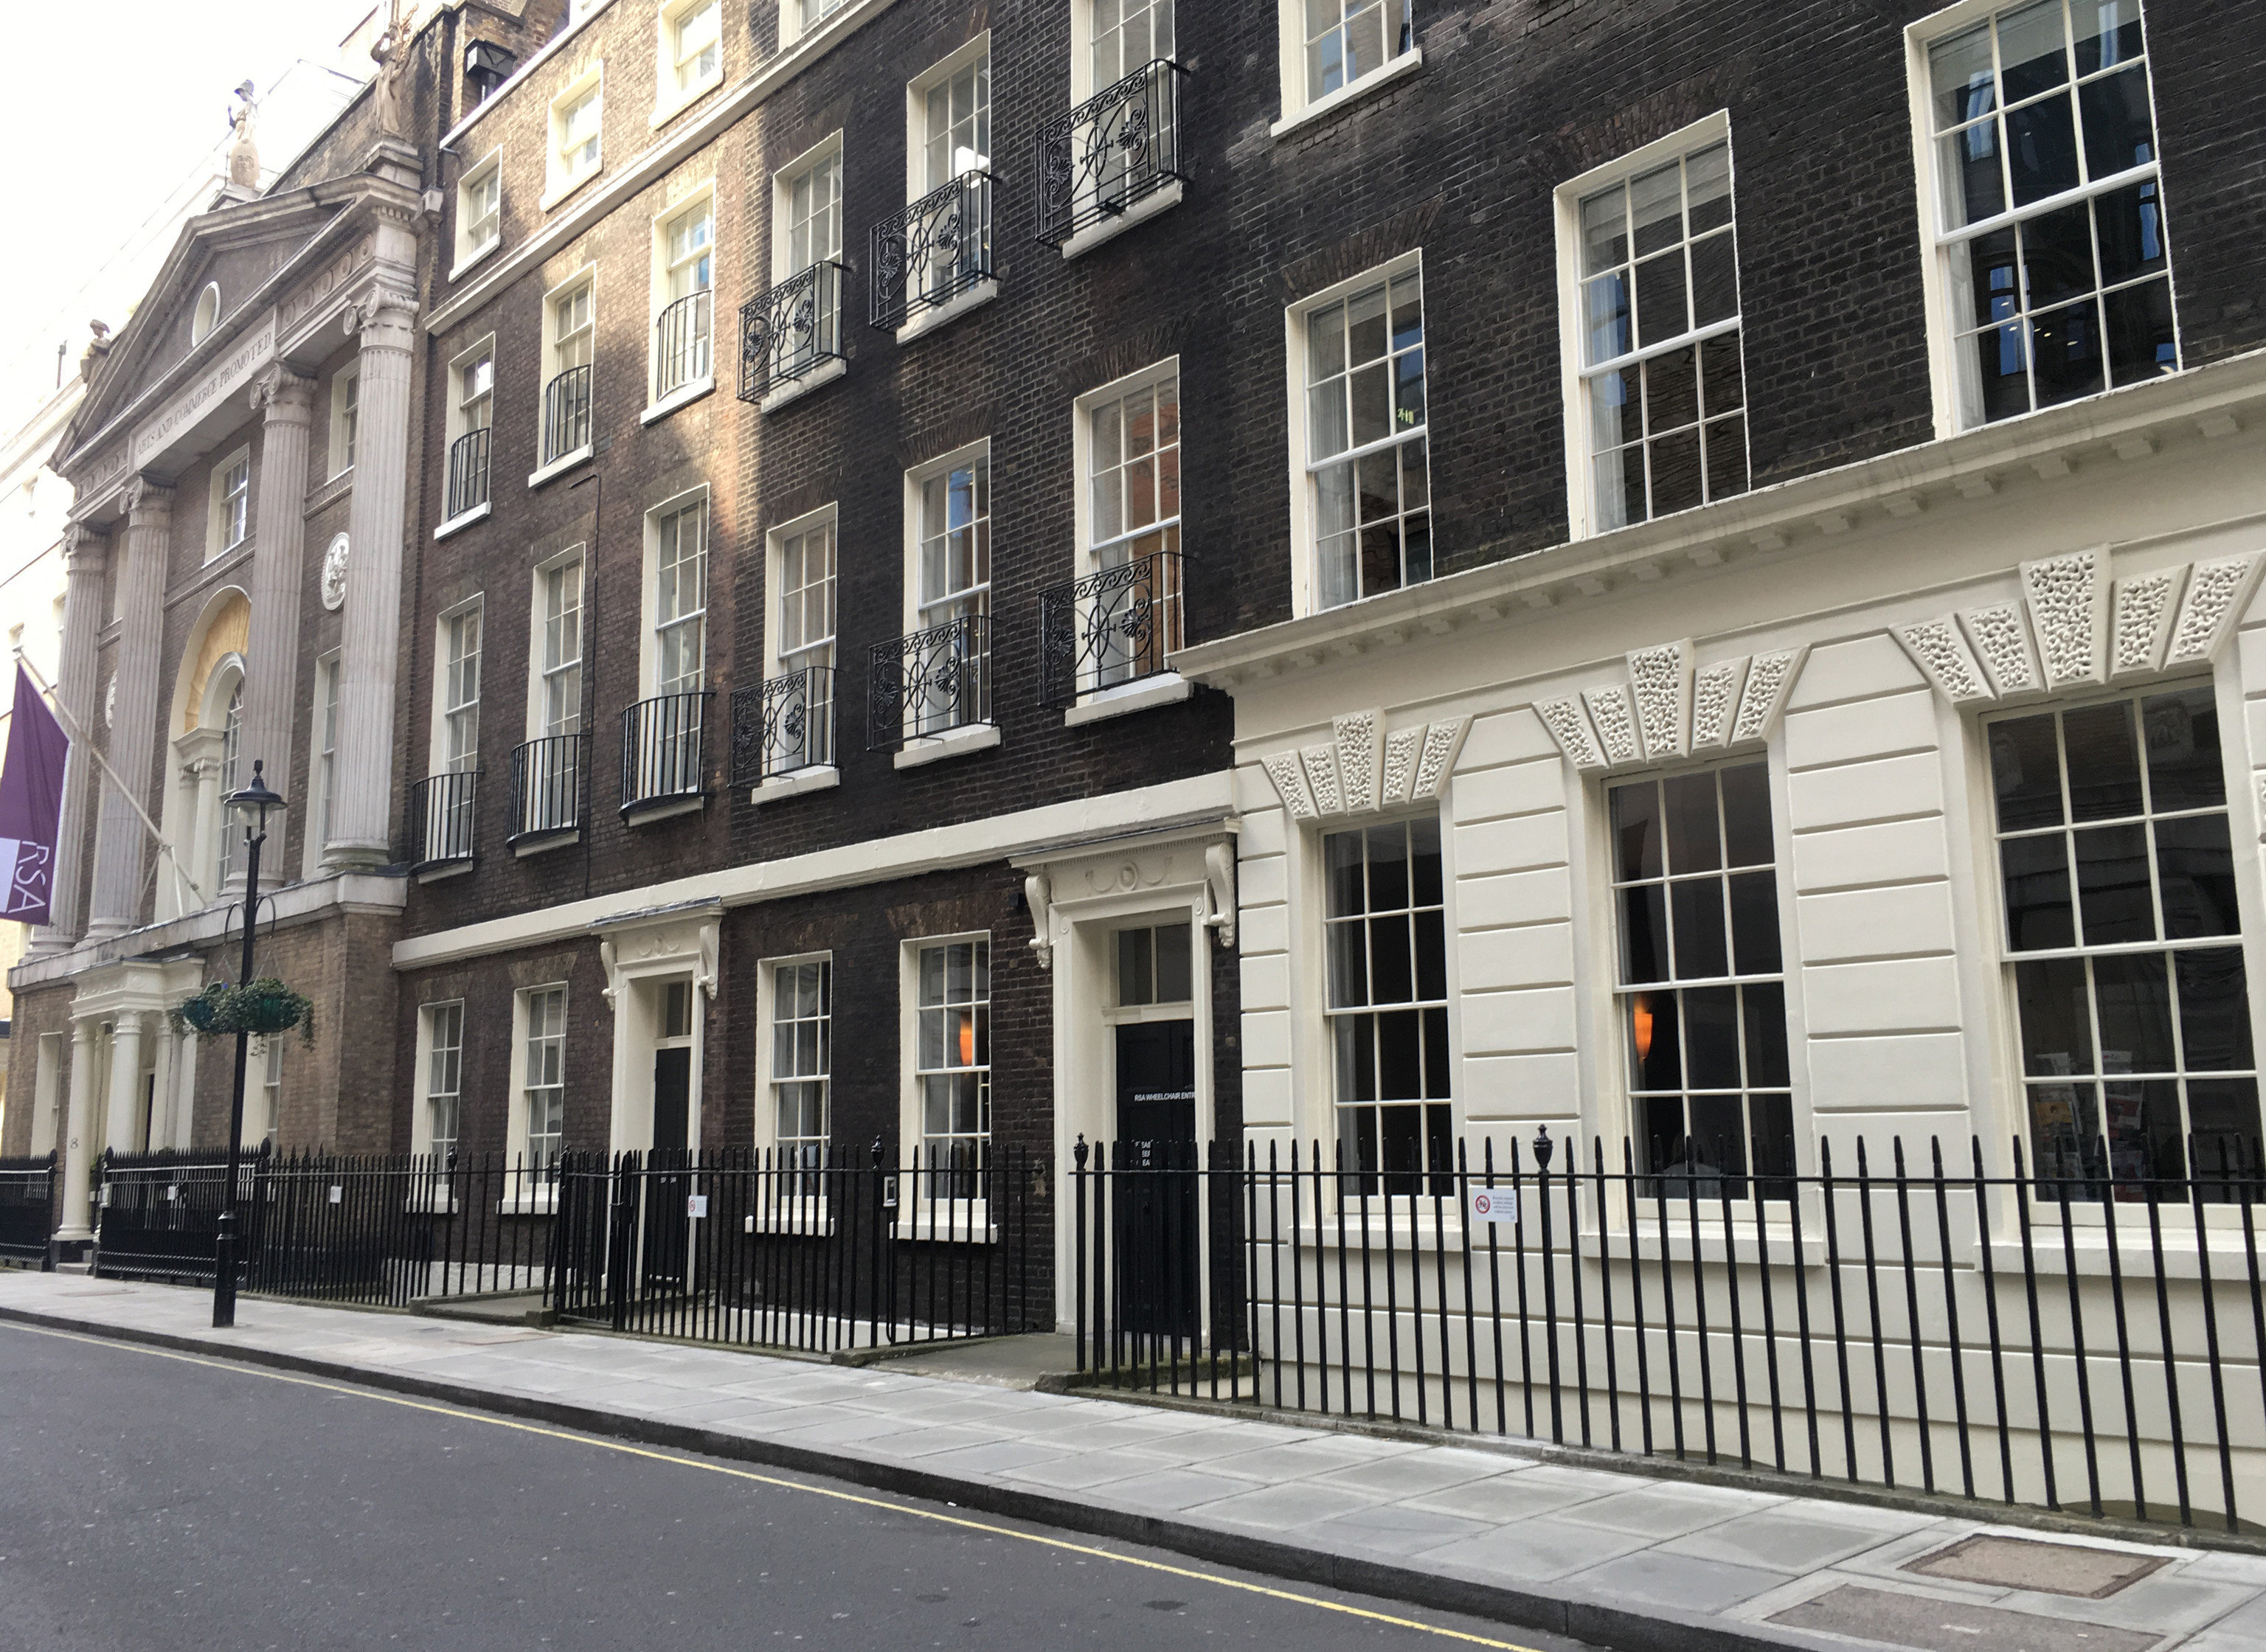 England europe London Luxury Travel Trip Ideas property building neighbourhood Town infrastructure house mixed use street facade residential area City window apartment condominium road